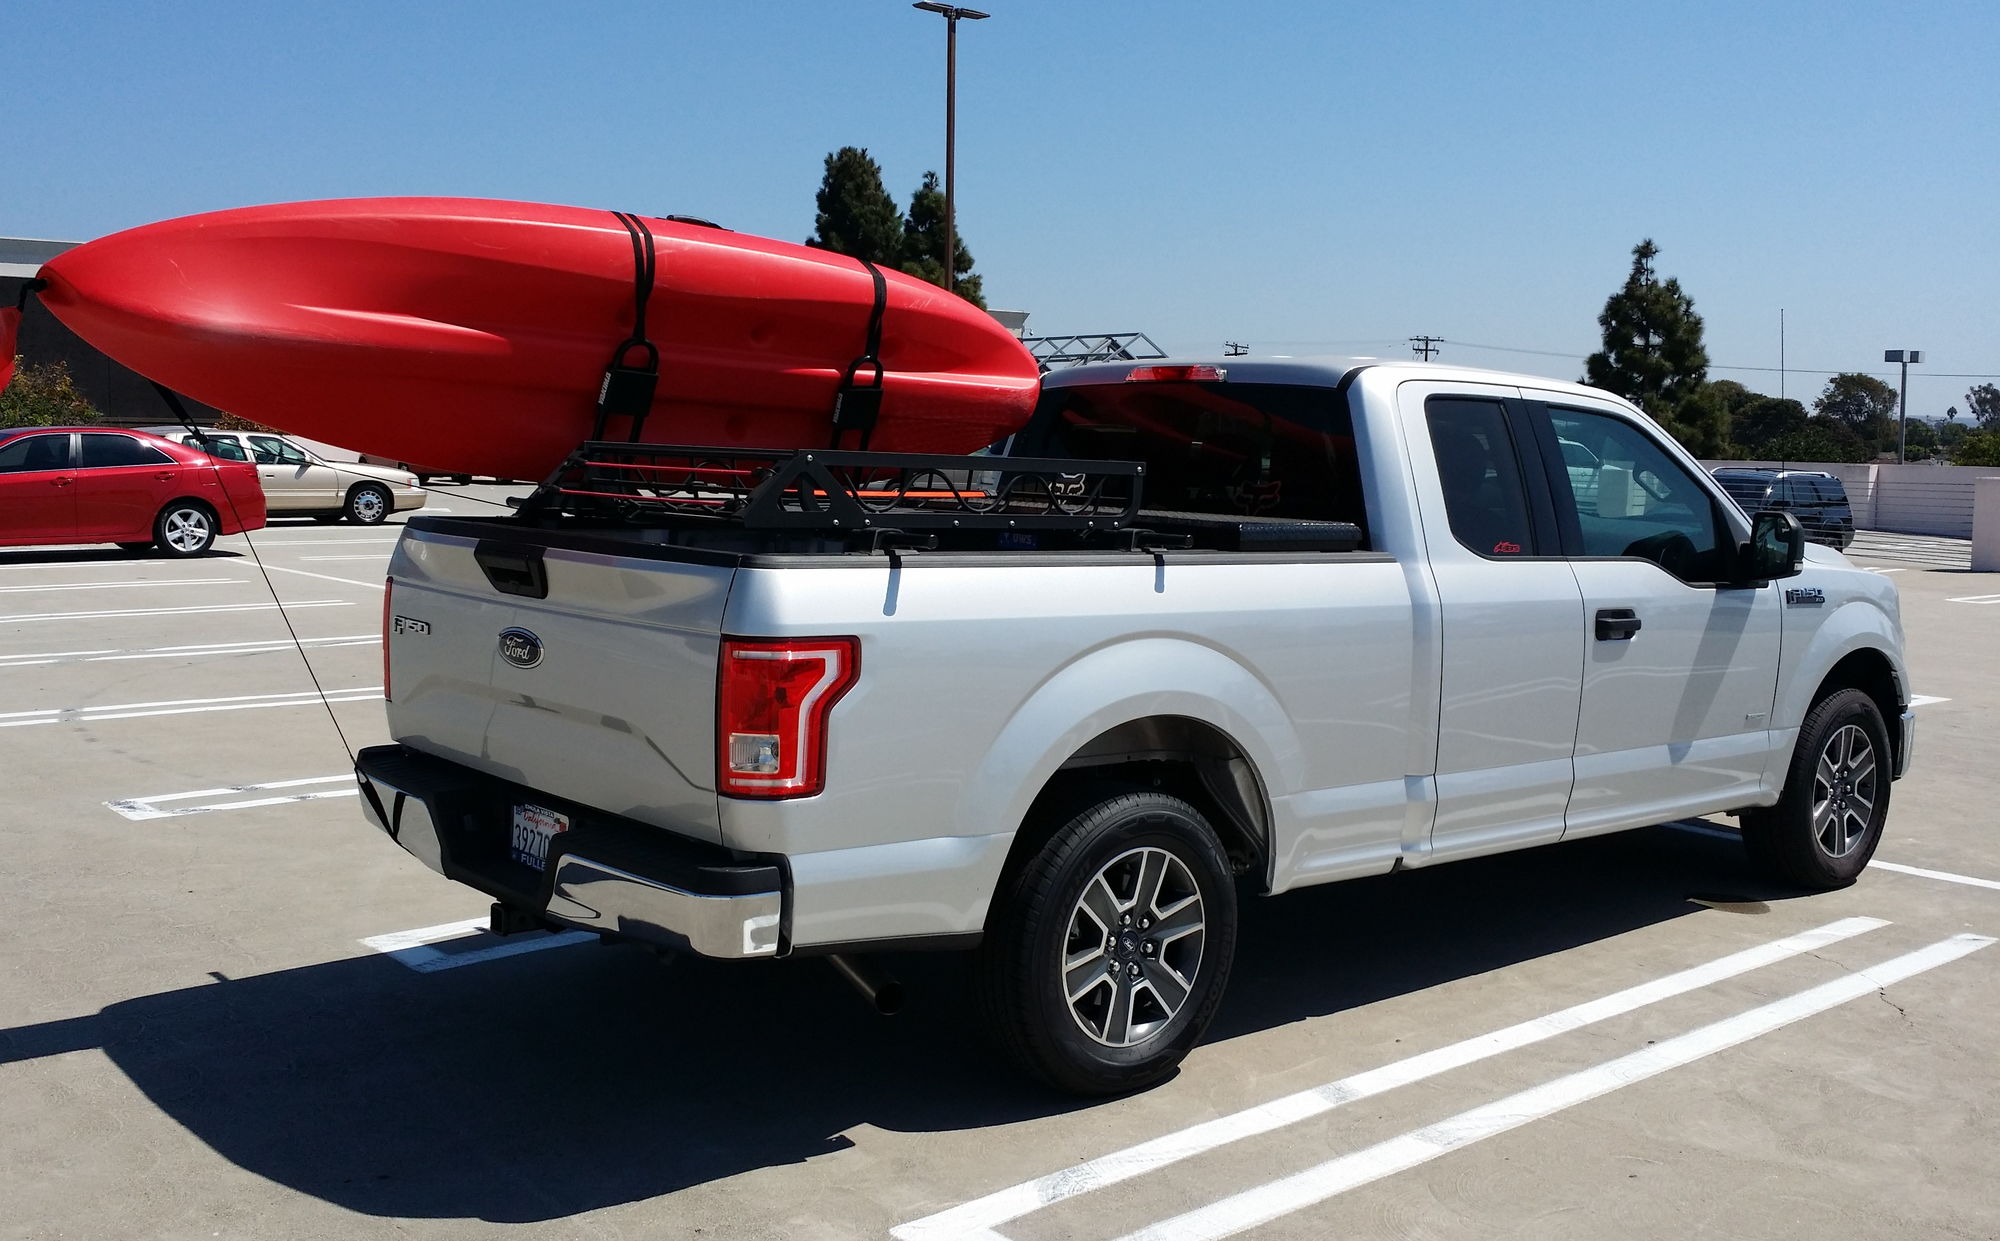 2015 truck pics only no comments allowed page 15 ford f150 forum community of ford truck fans